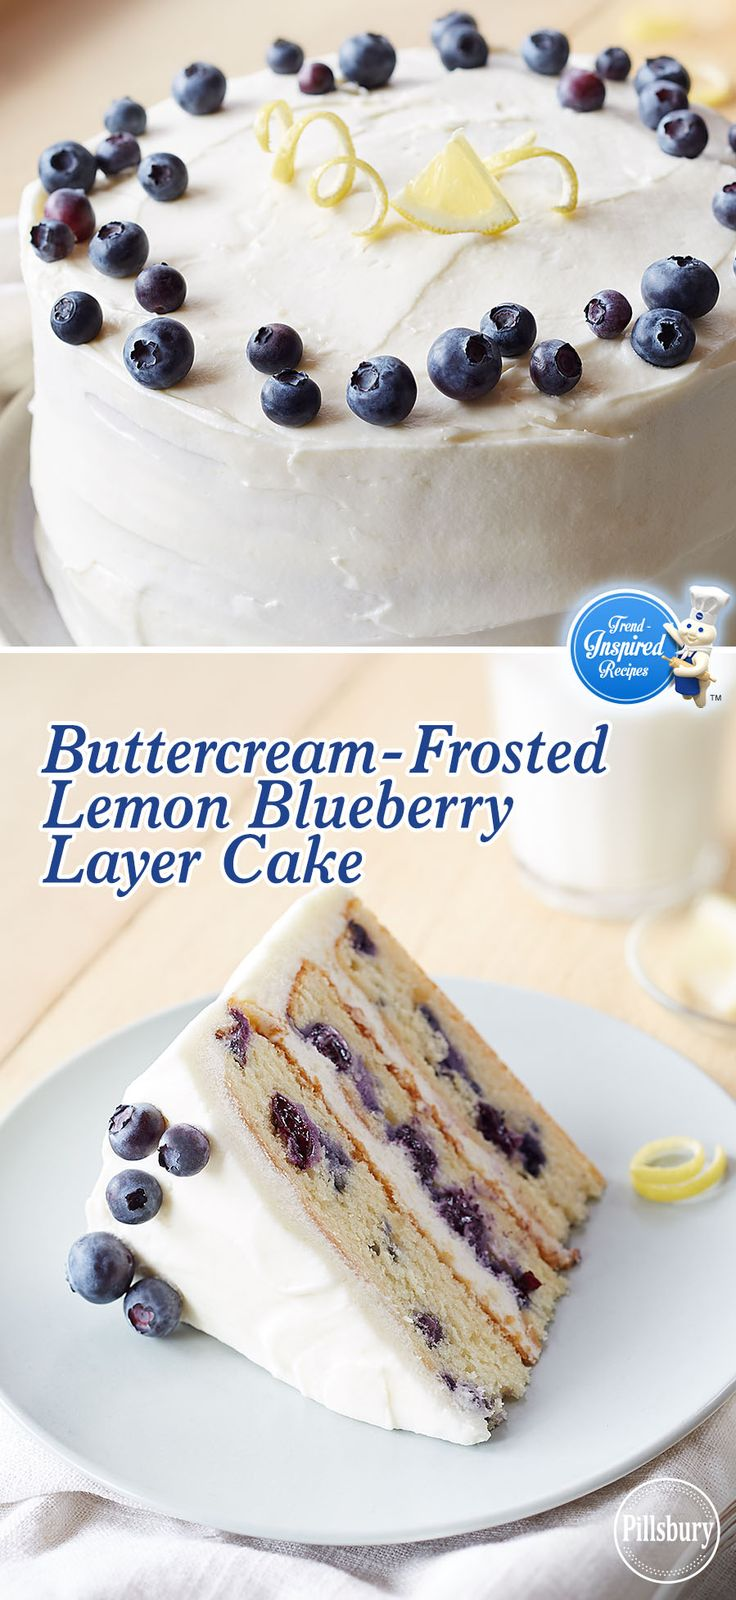 This Buttercream-Frosted Lemon Blueberry Layer Cake is made with Pillsbury™ Purely Simple™ White Cake Mix and Pillsbury Purely Simple Buttercream Frosting Mix. With sweet blueberries and tart lemon, it makes a delicious dessert.